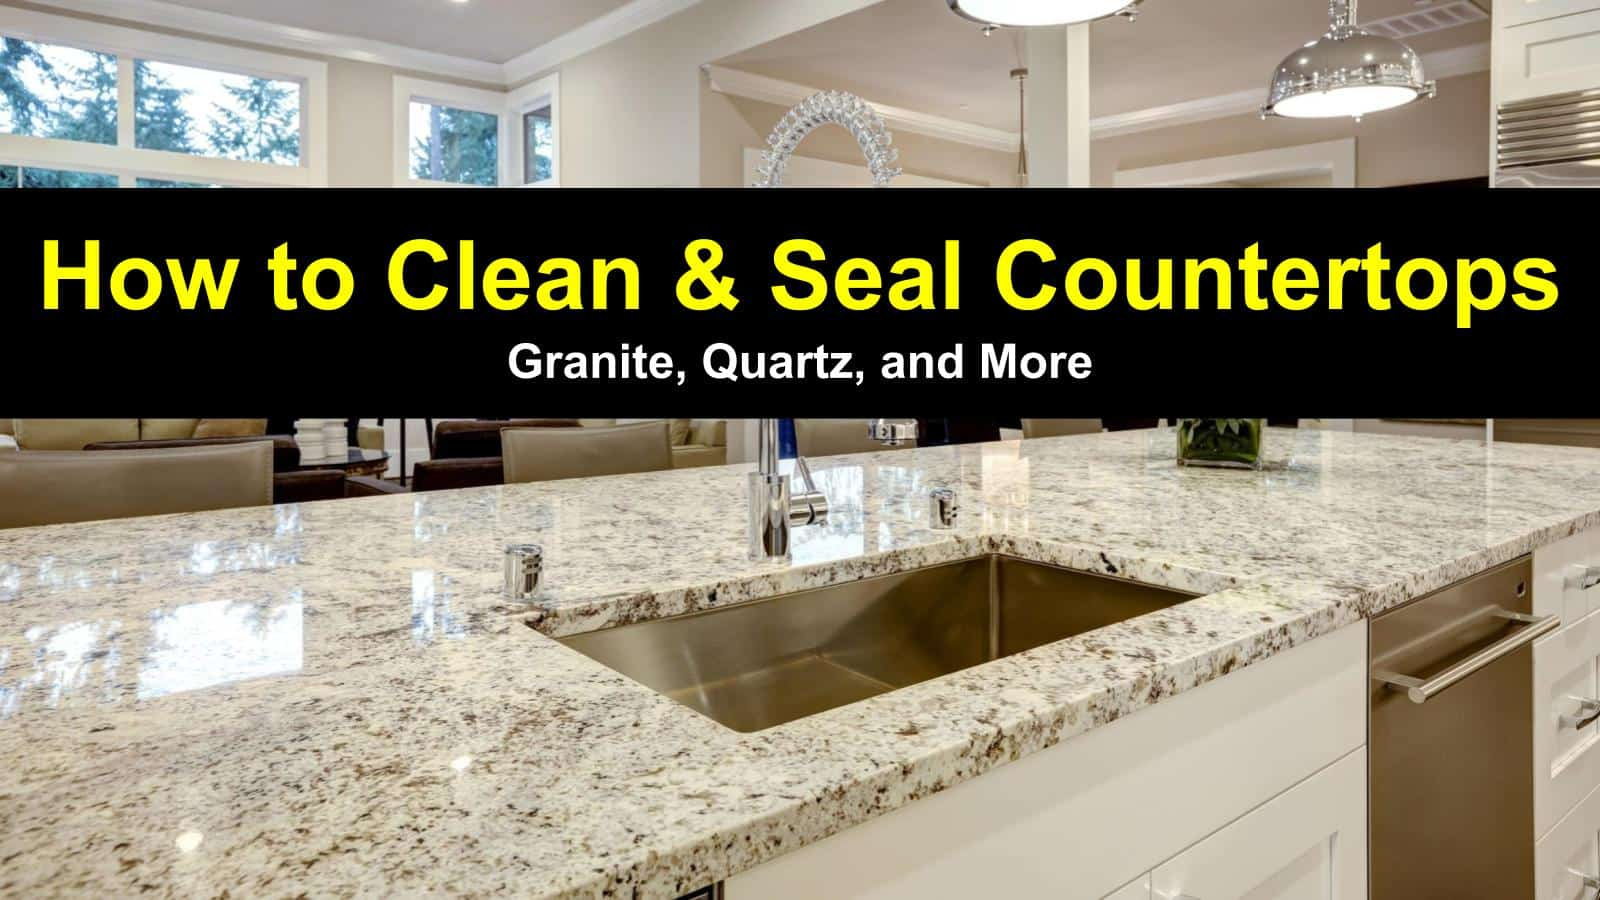 best s largos marble supplier granite countertops largo countertop sealing quartz and